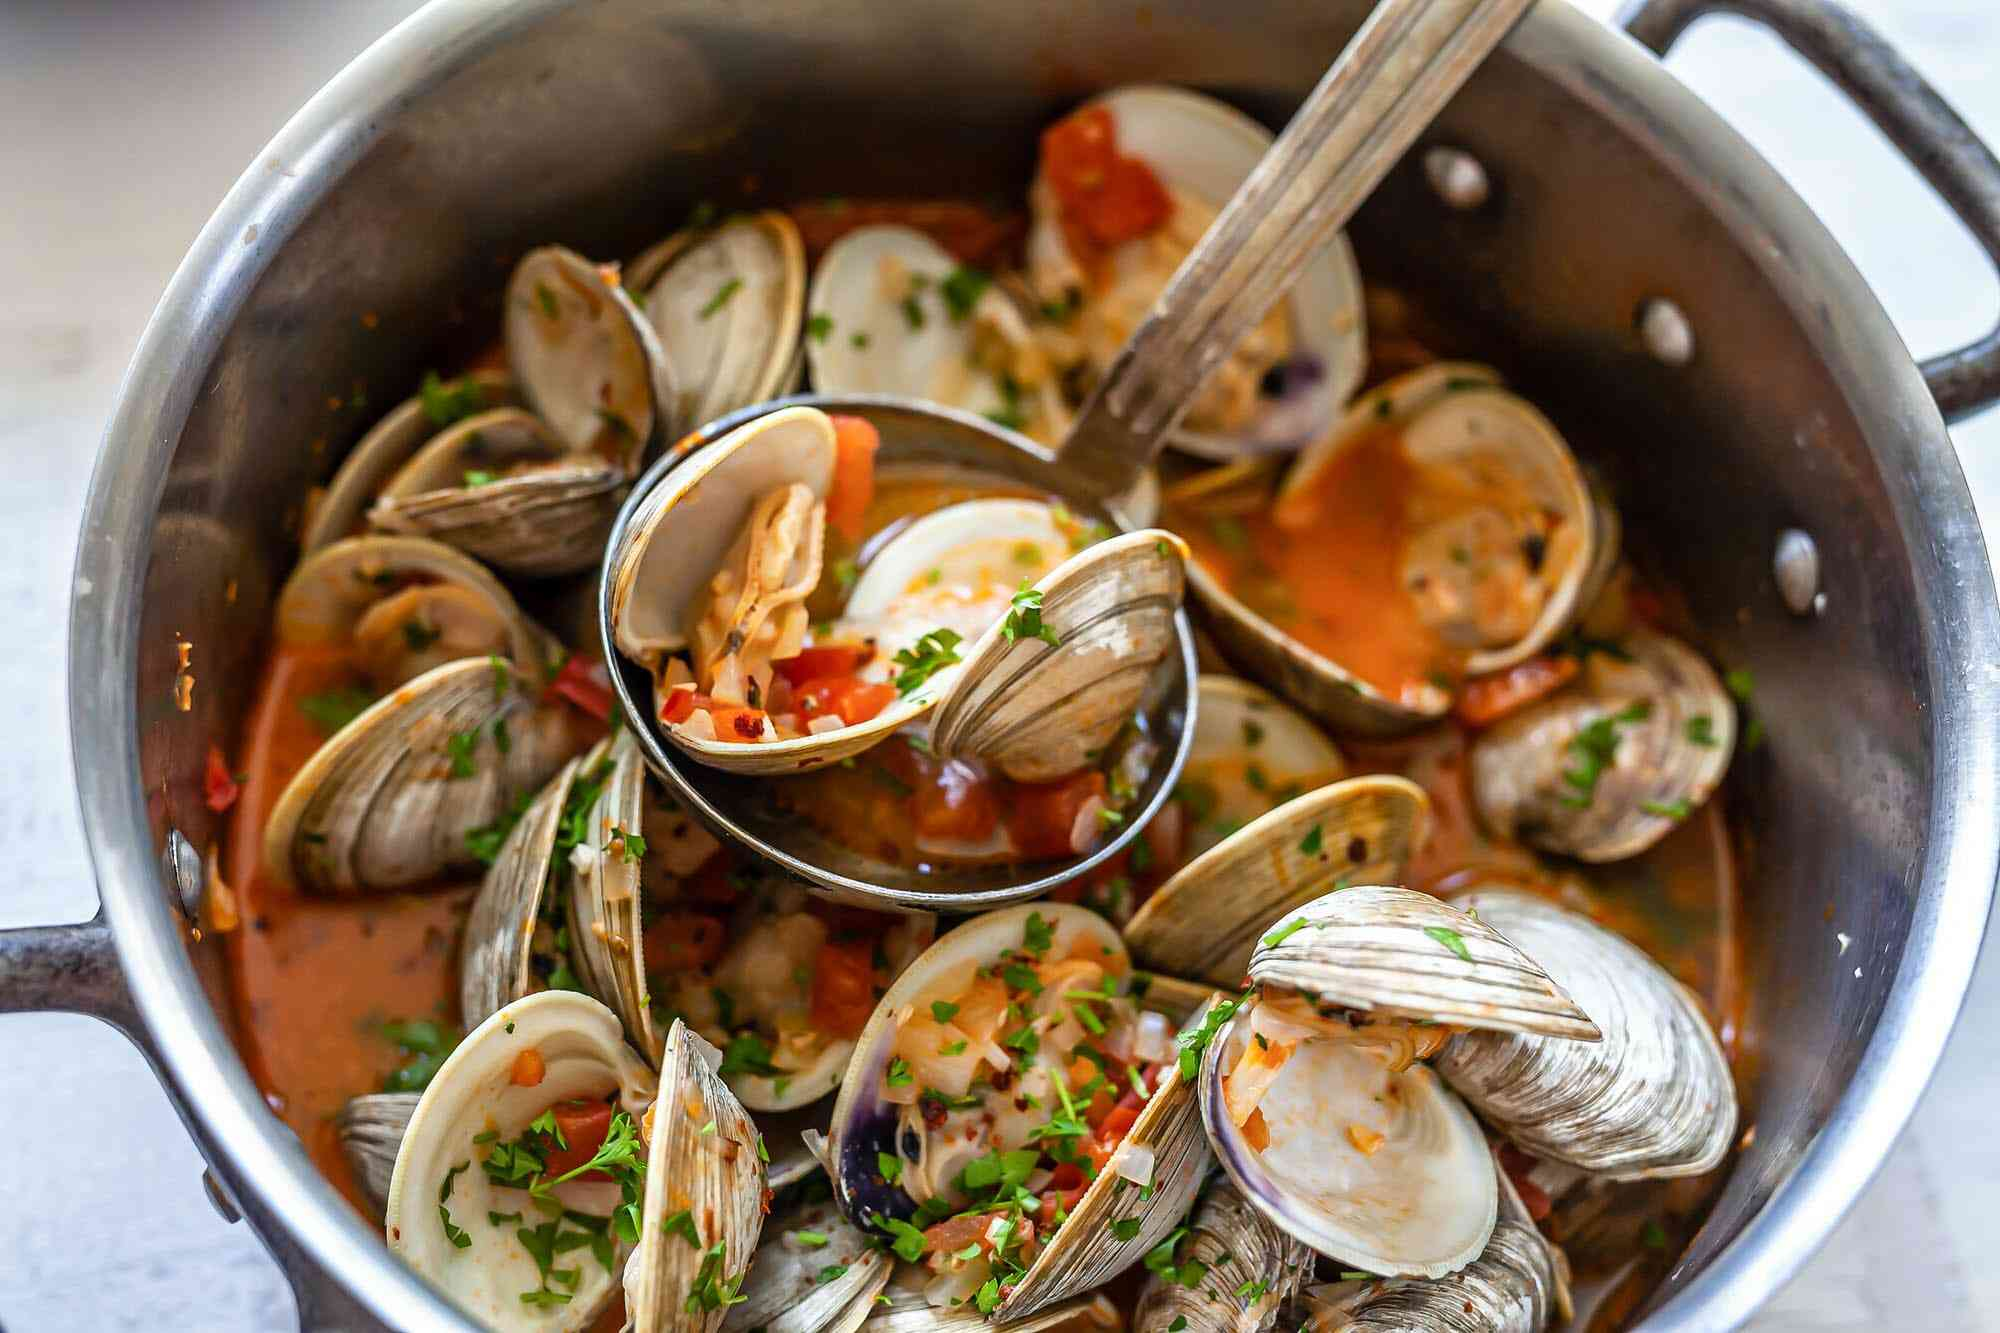 Overhead view of steamed clams with chorizo in a large stockpot. A ladle is resting on top and is full of clams.